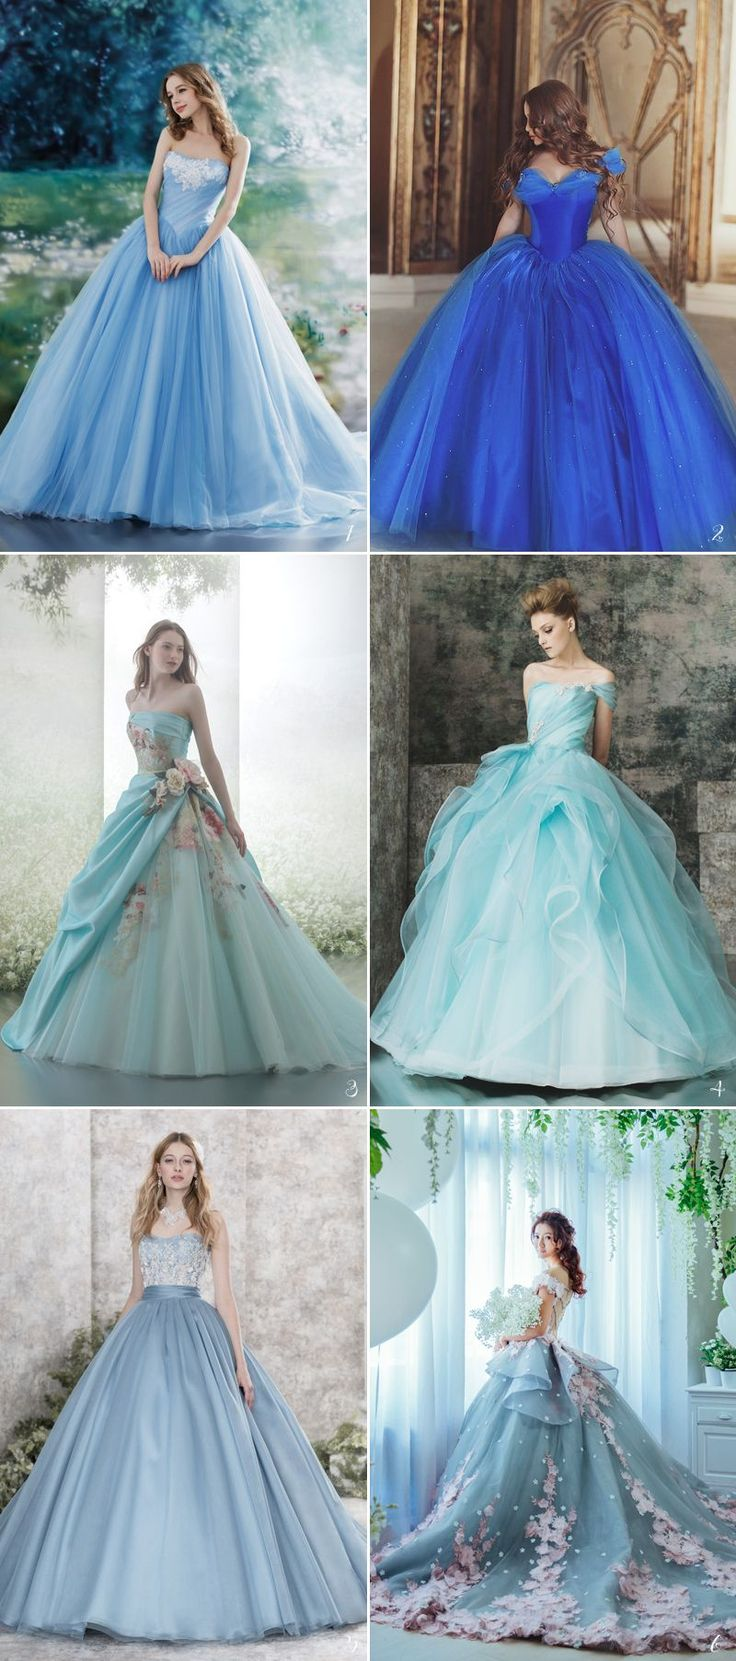 42 Fairy Tale Wedding Dresses For The Disney Princess Bride!